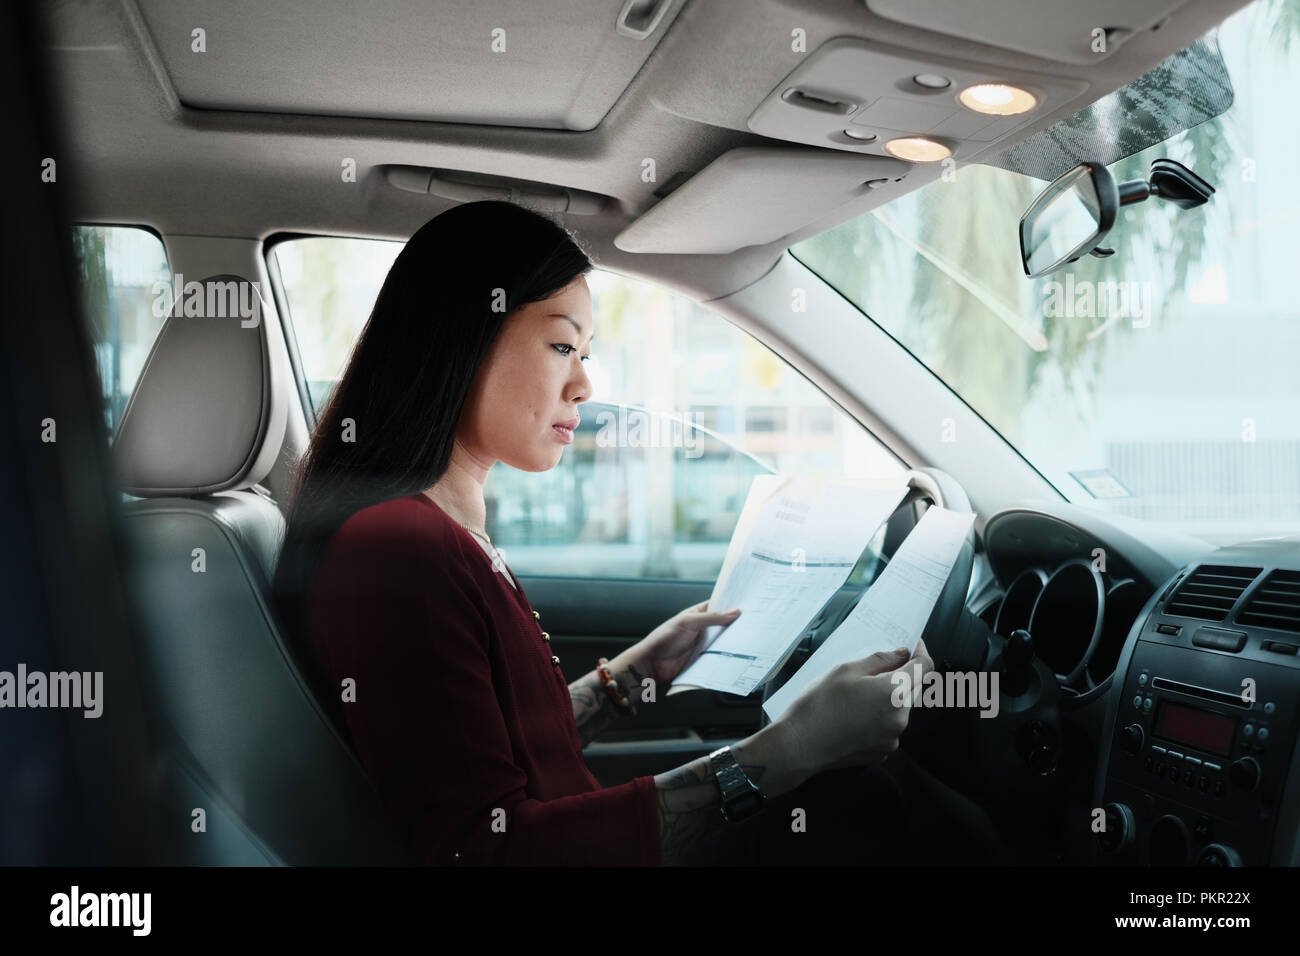 Chinese female manager working in car. Successful Asian businesswoman using laptop computer and looking at paperwork. - Stock Image